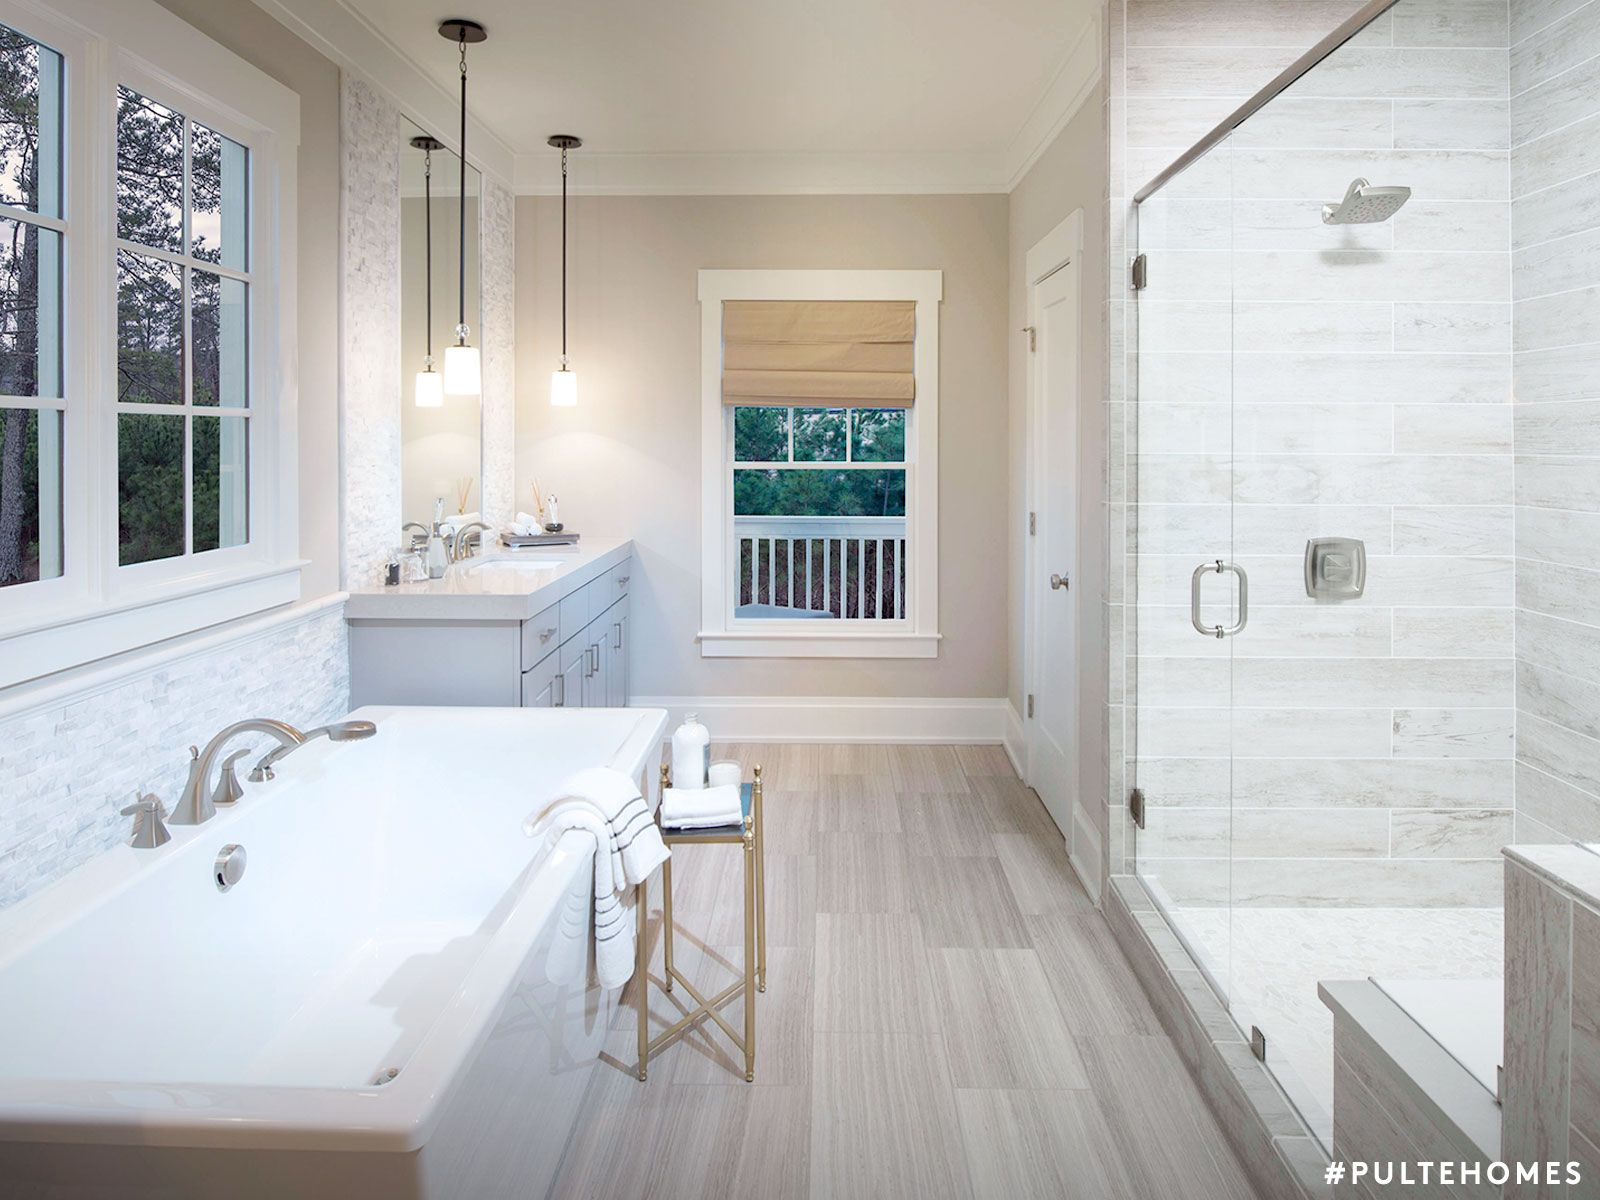 Select Bath Options That Let You Recharge In A Modern,